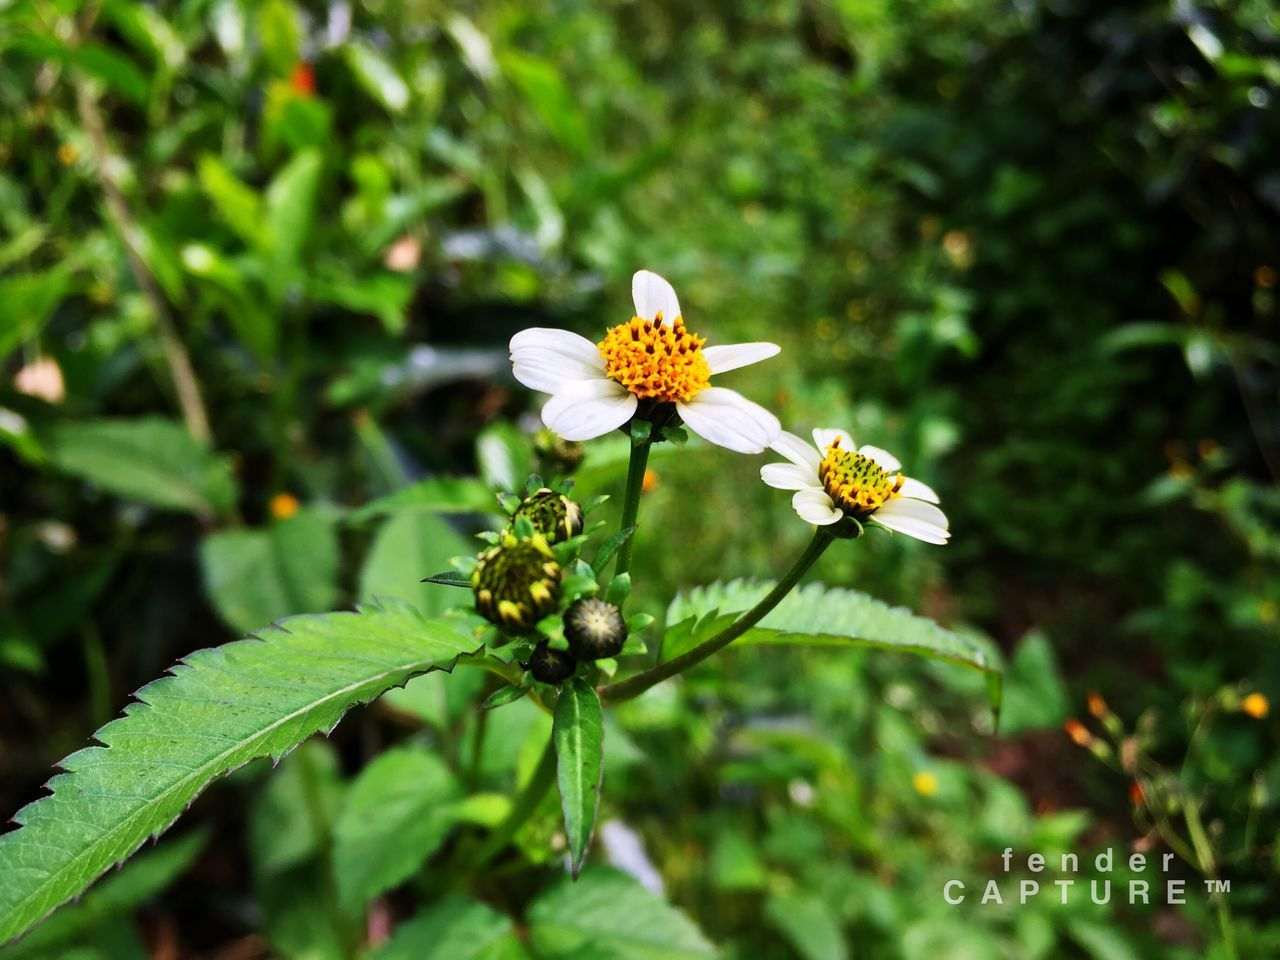 flower, growth, nature, focus on foreground, day, beauty in nature, green color, plant, petal, fragility, outdoors, freshness, blooming, leaf, no people, flower head, close-up